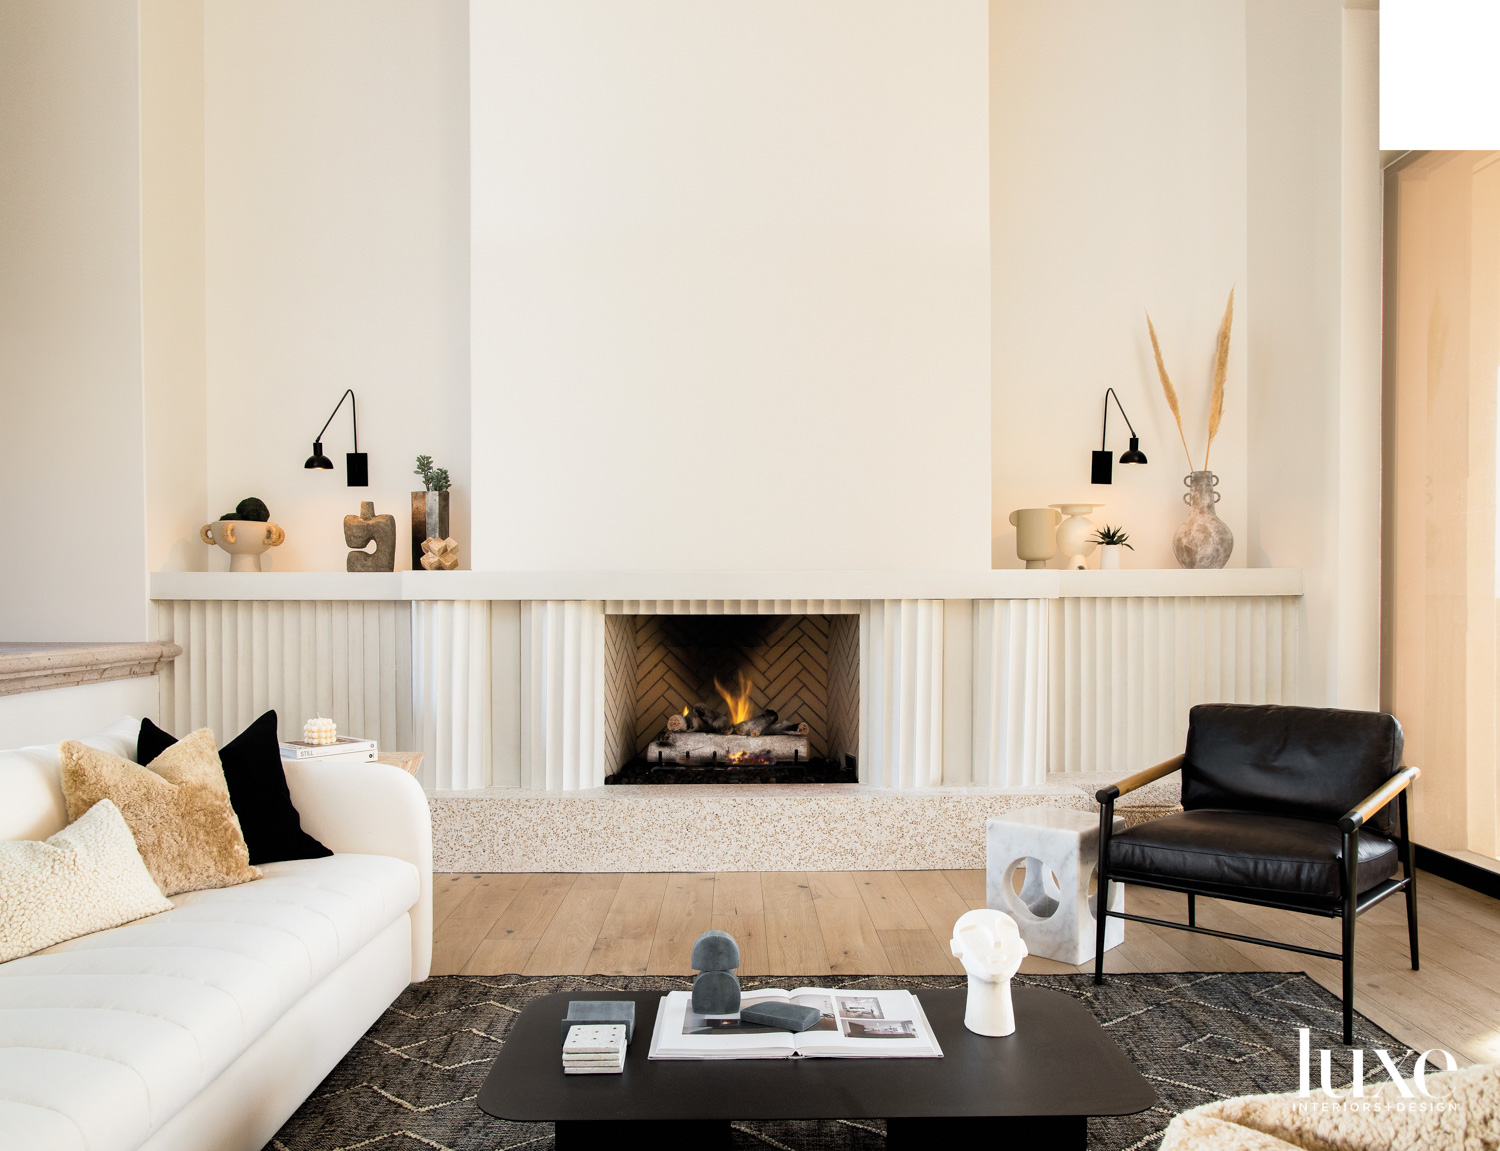 A concrete fireplace with a...